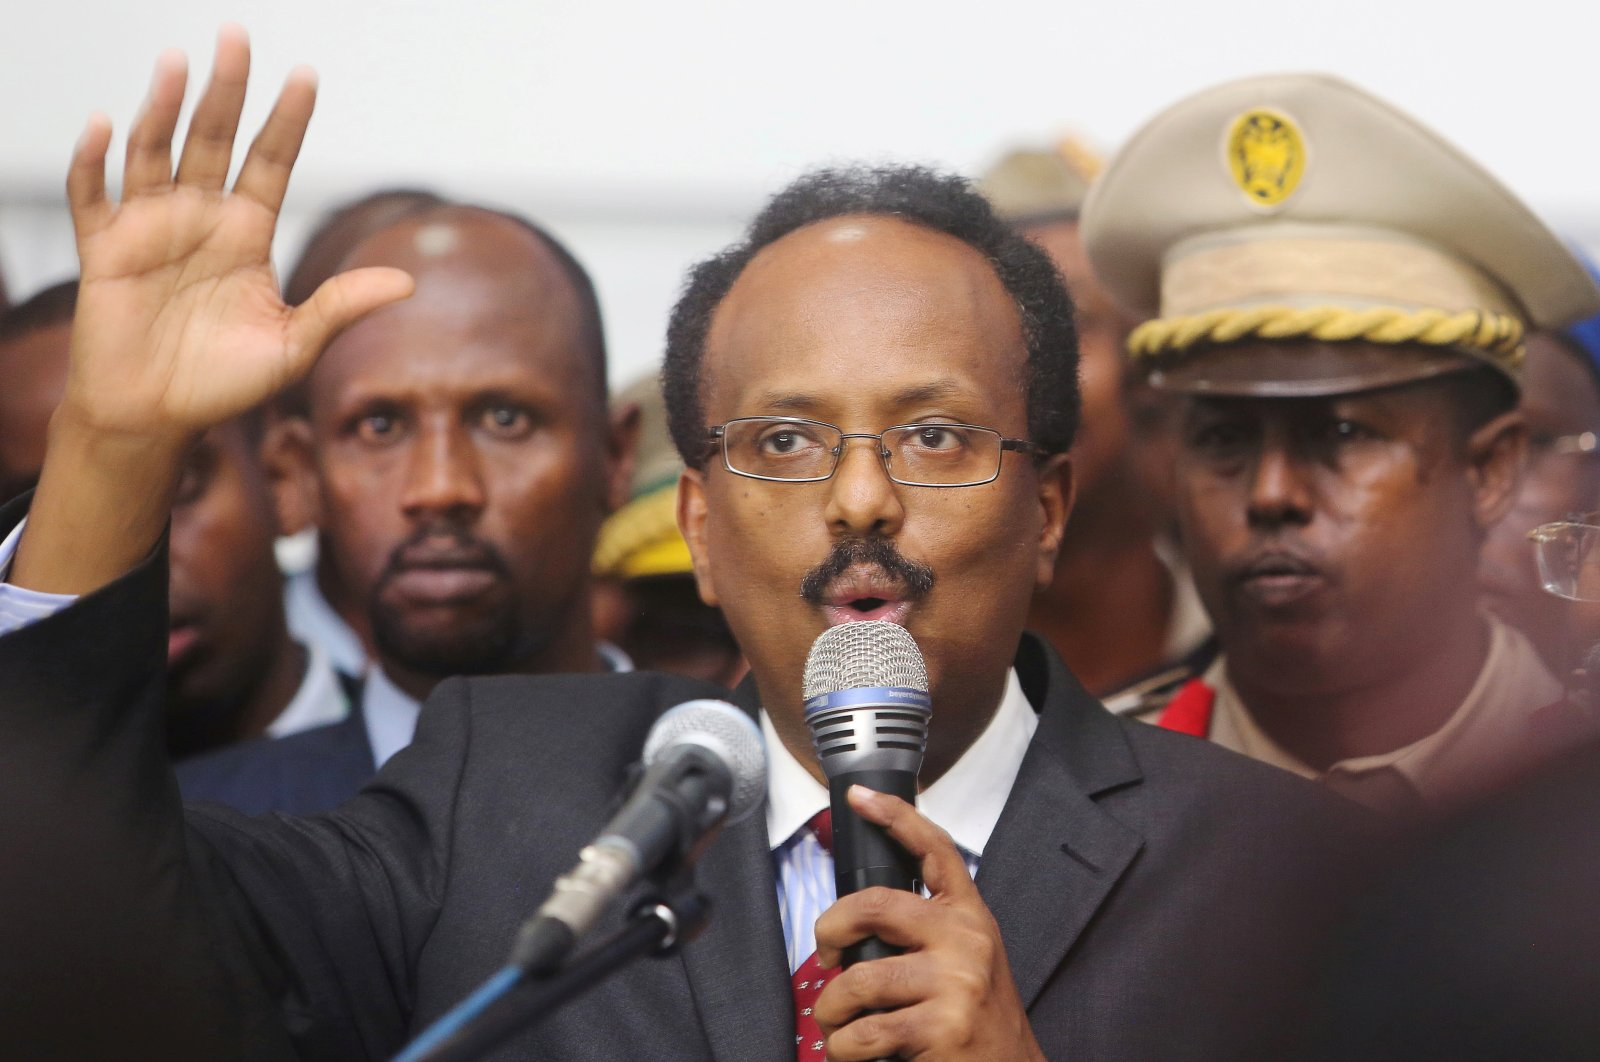 Somalia's President Mohamed Abdullahi Mohamed addresses lawmakers after winning the vote, at the airport in the capital Mogadishu, Somalia, Feb. 8, 2017. (Reuters Photo)